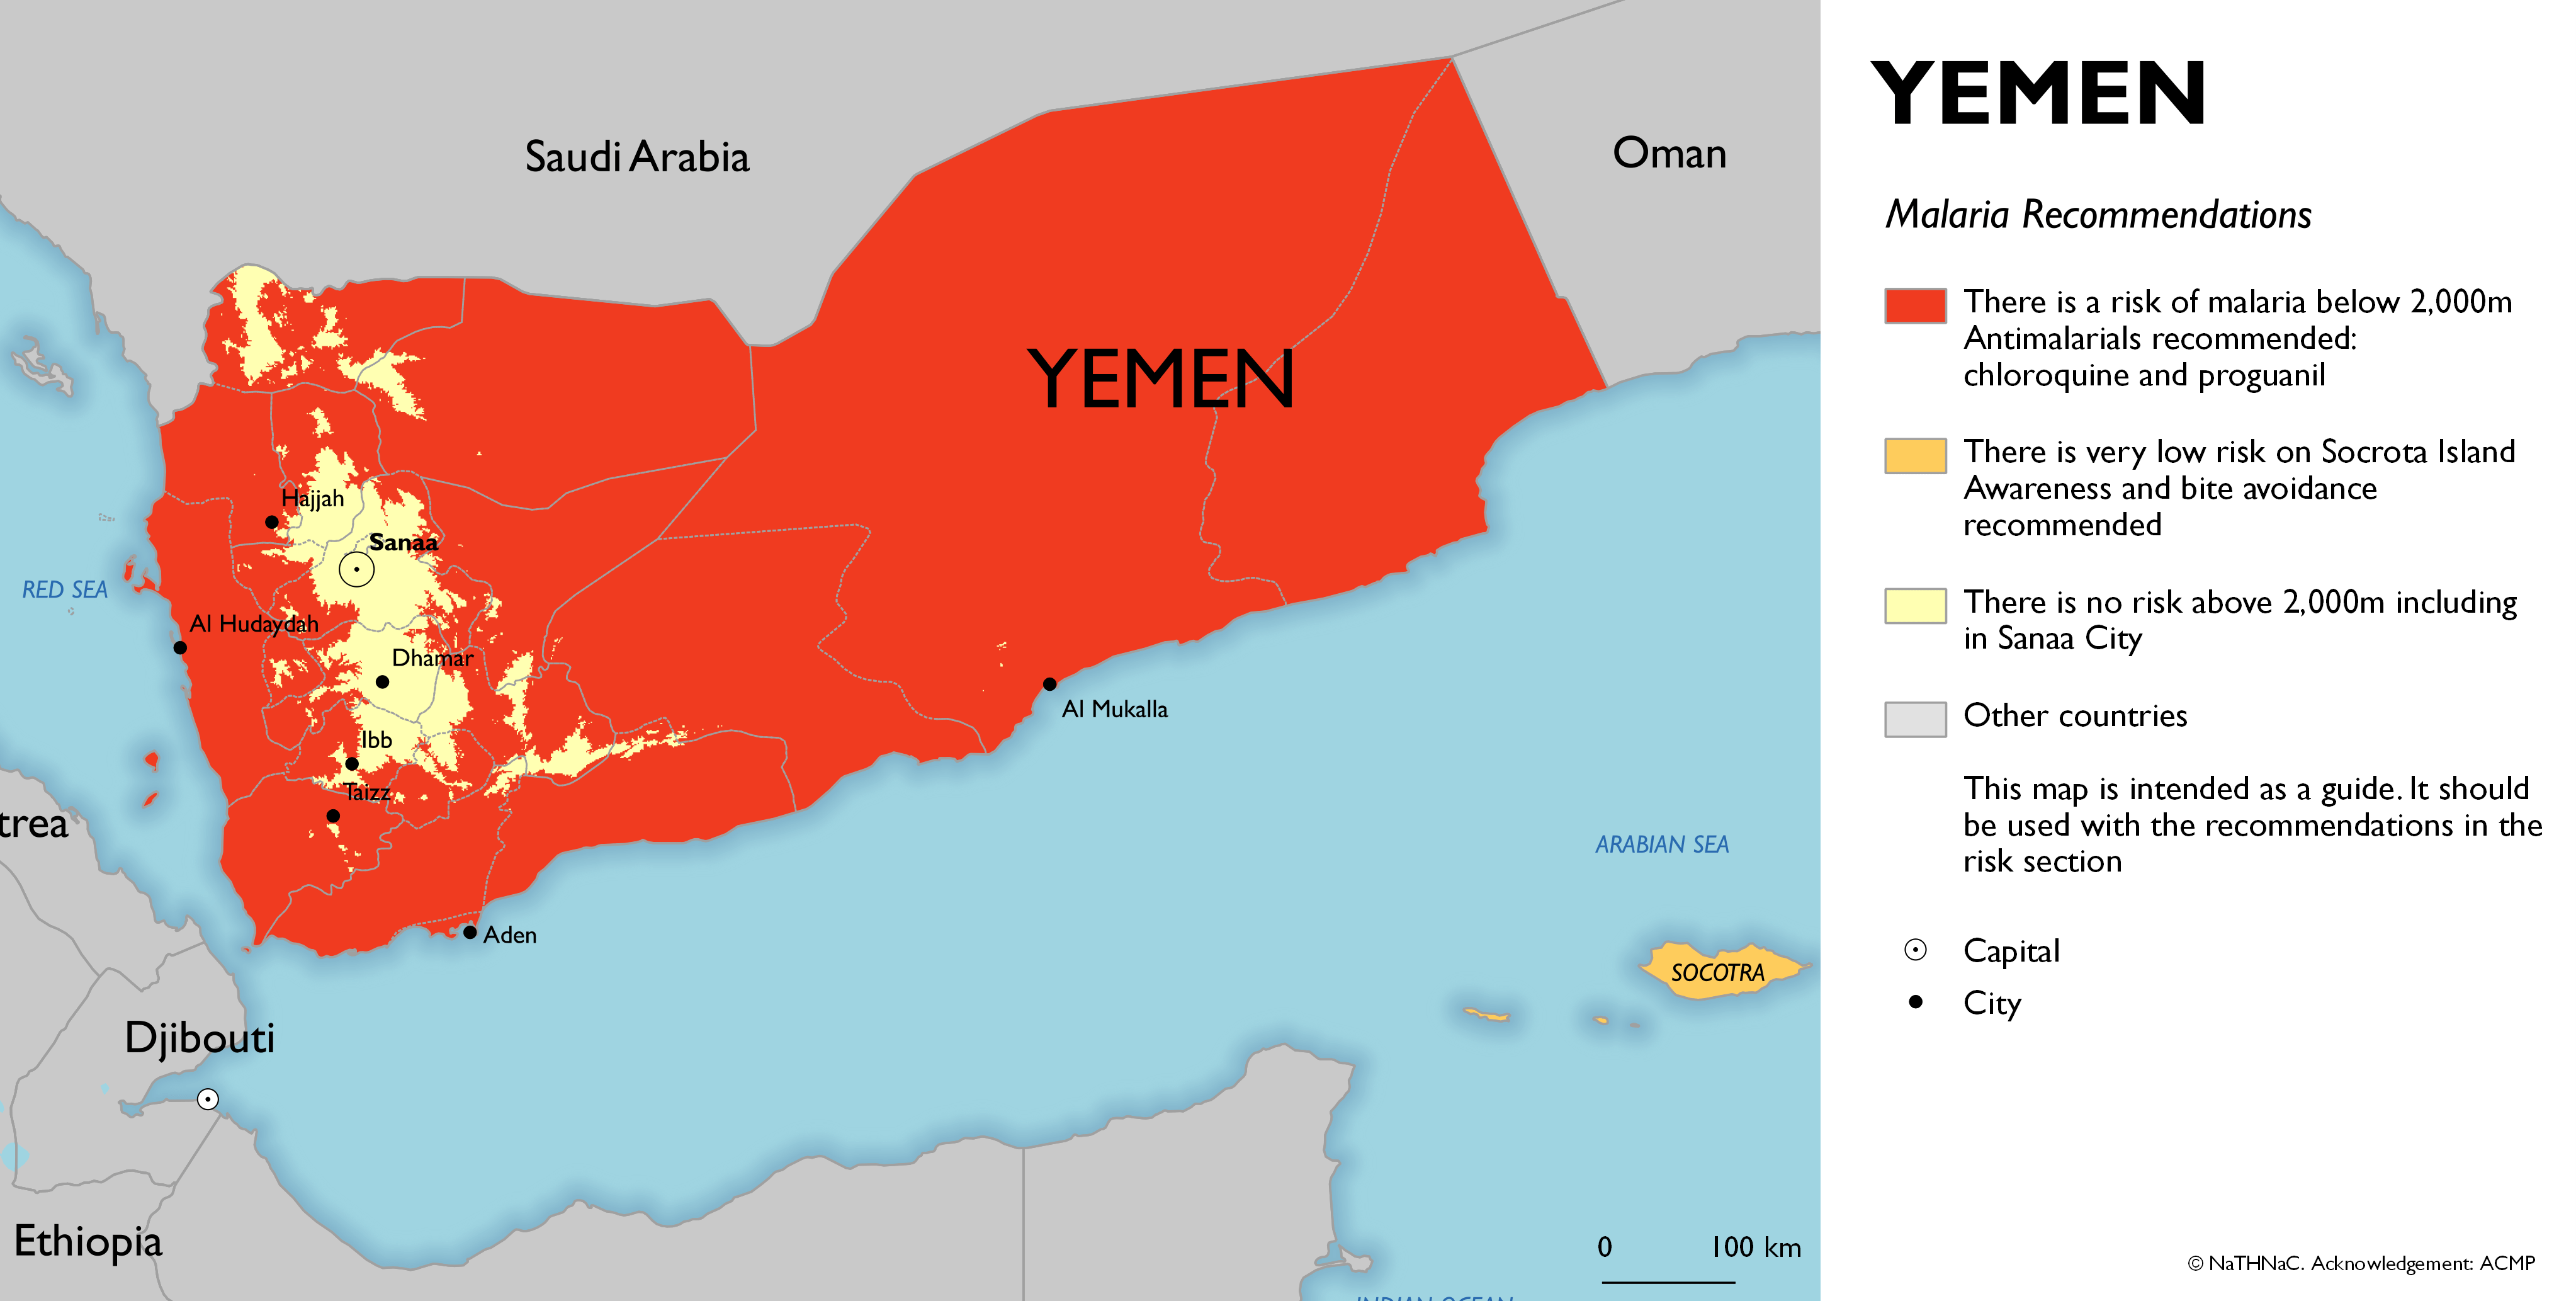 Nathnac yemen antimalarial recommendations map gumiabroncs Image collections